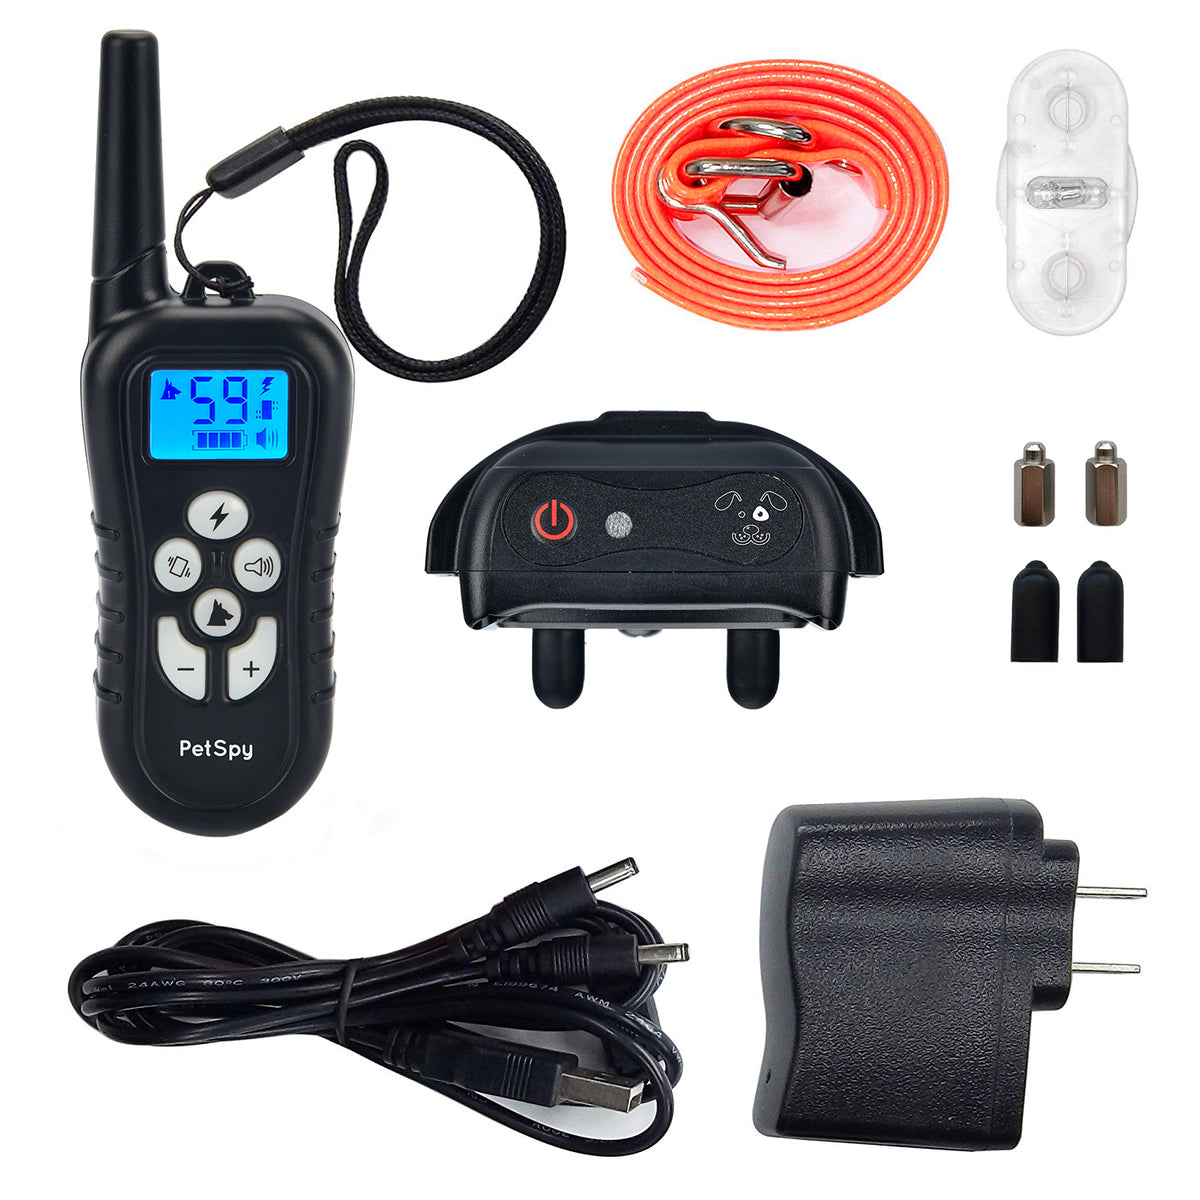 PetSpy M919-1 package contents: collar, remote, orange collar, charger, set of prongs, test light